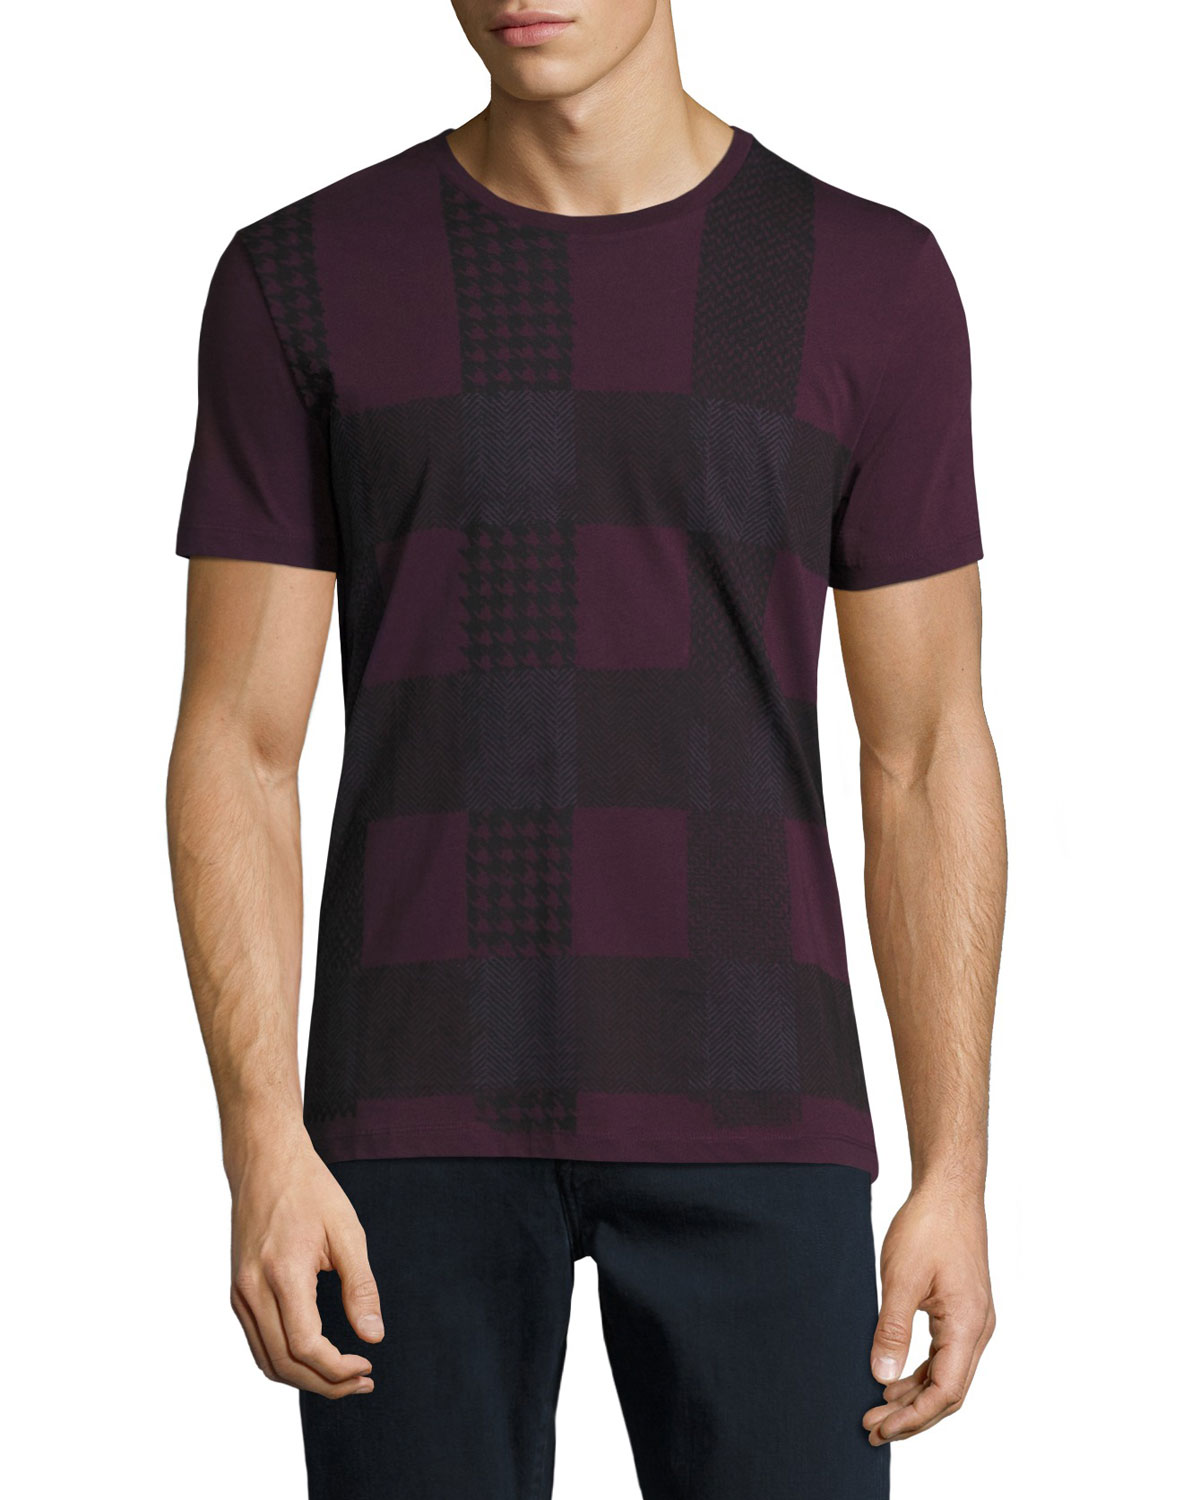 Ashby Check Graphic T-Shirt, Dark Elderberry